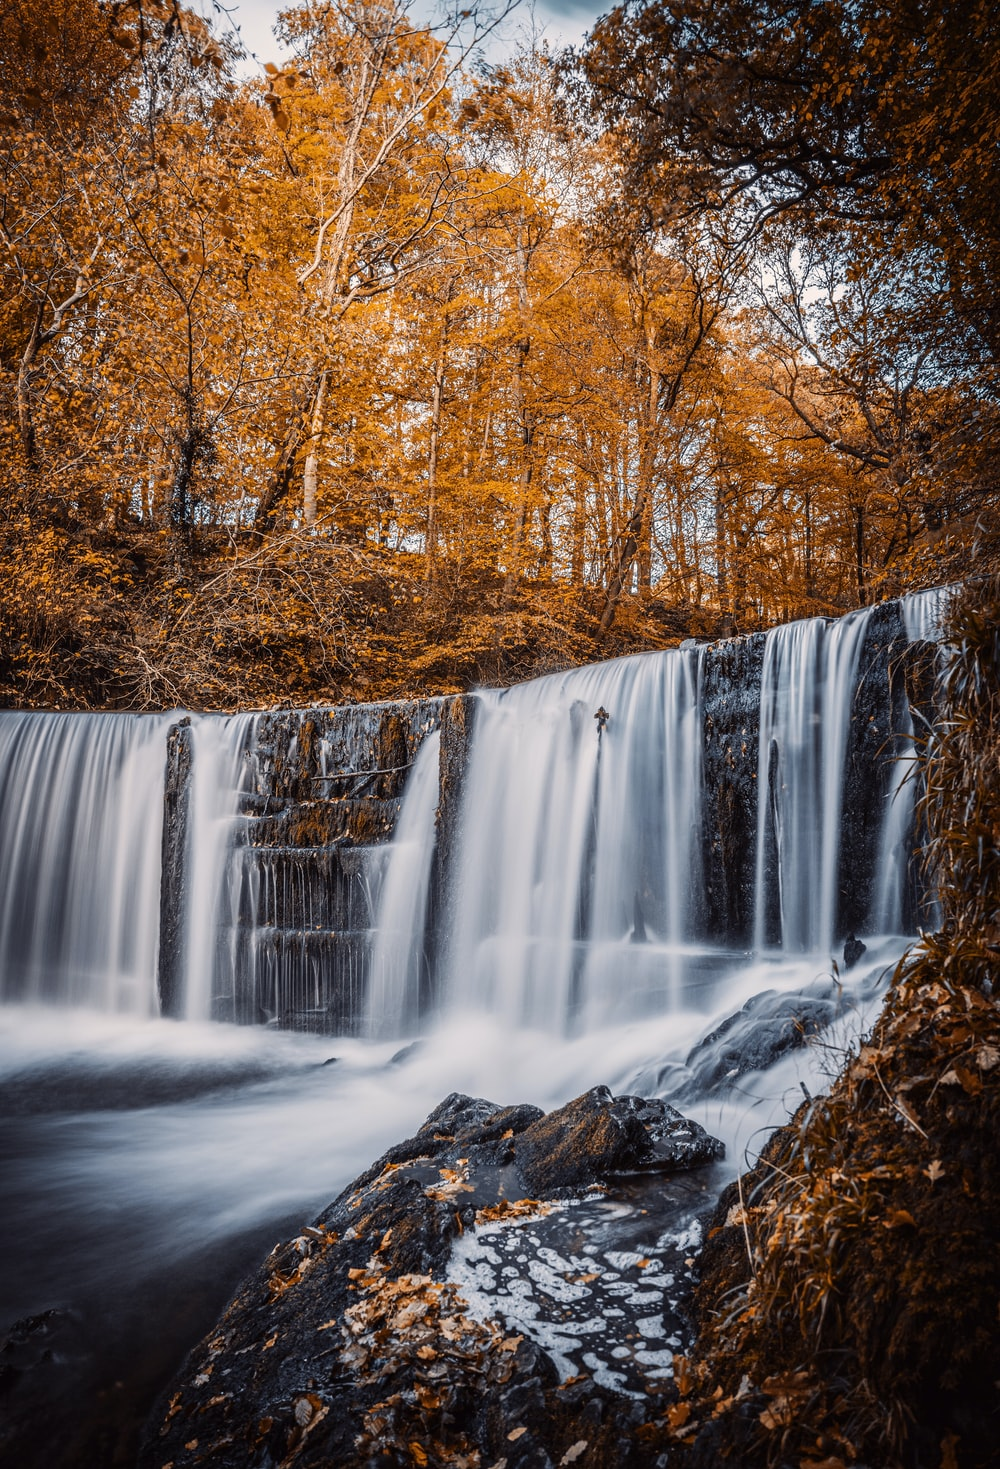 water falls in the middle of brown trees